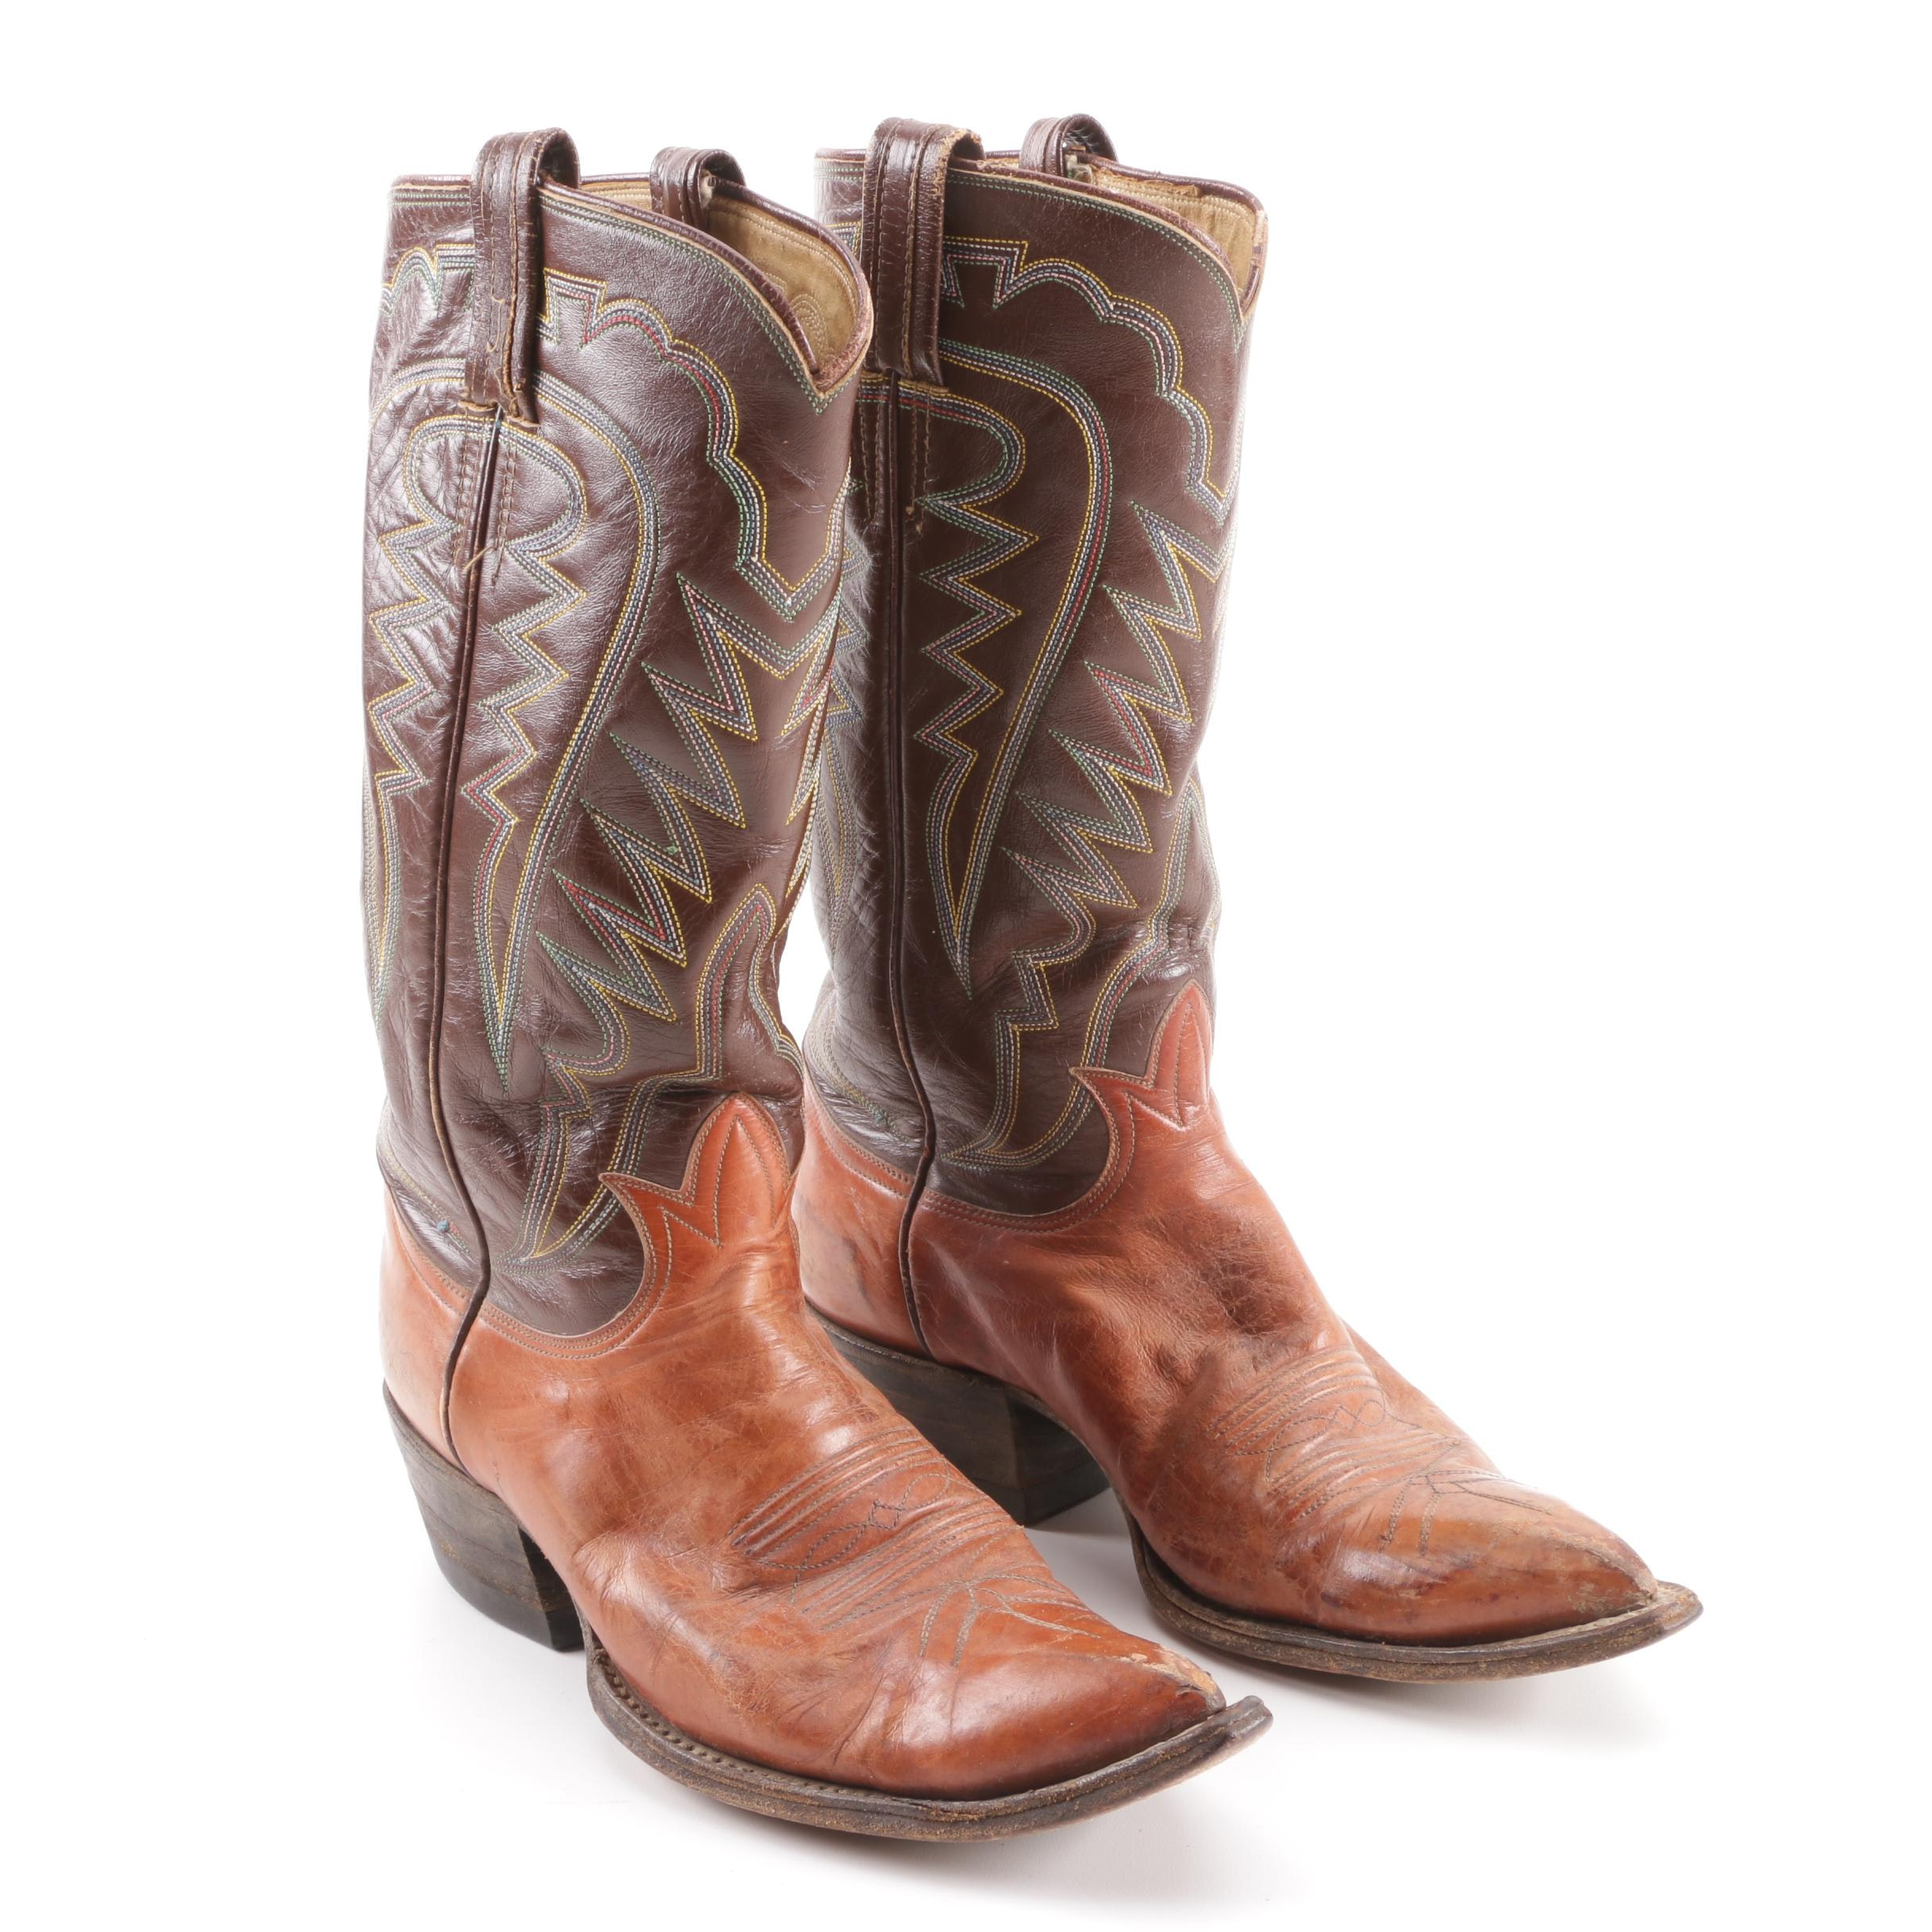 Women's Tony Lama of El Paso, Texas Two-Tone Brown Leather Western Boots